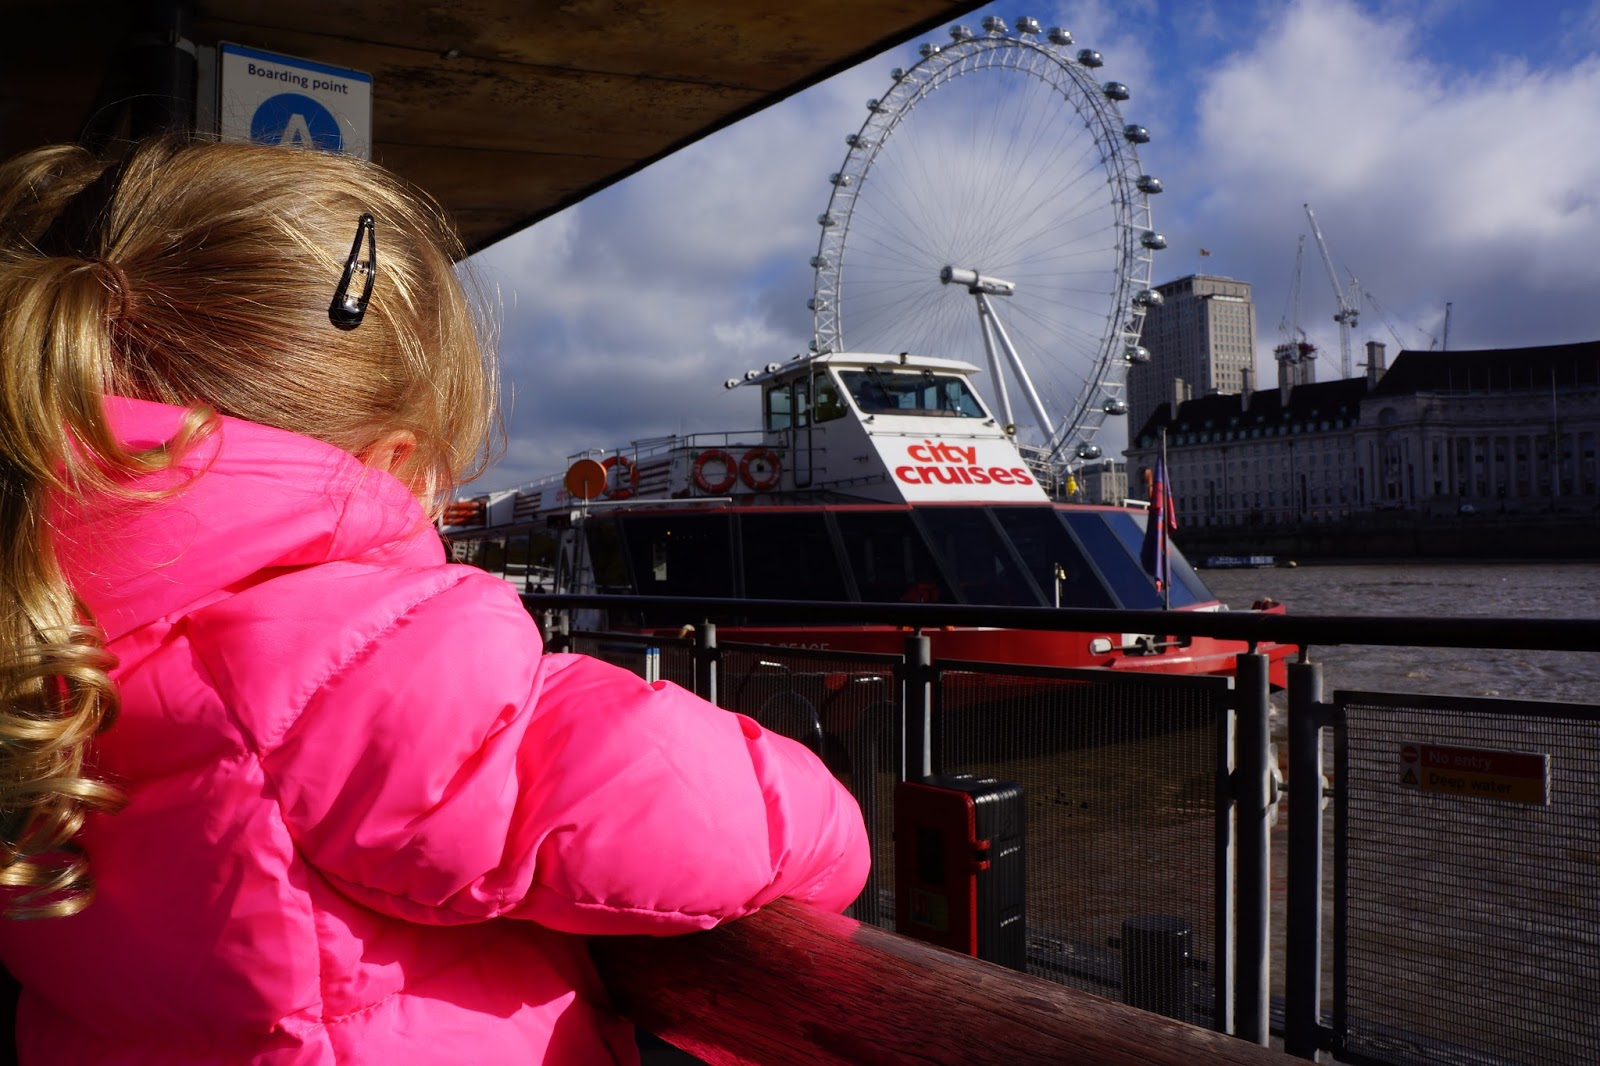 waiting for city cruises at westminster pier